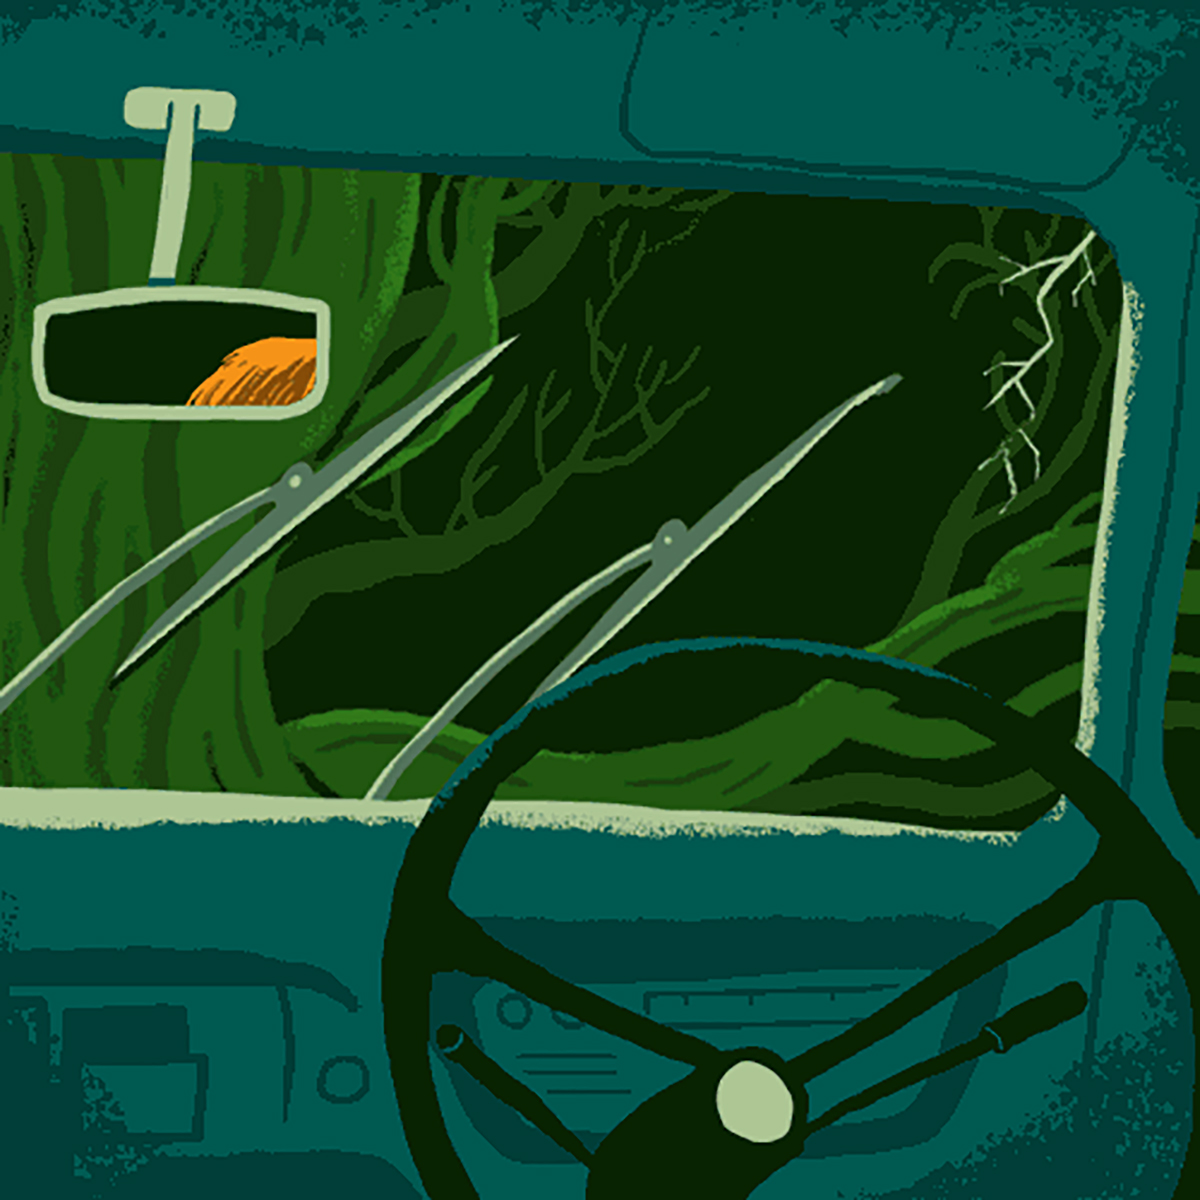 Illustration of the Ford Anglia interior from Read the Magic